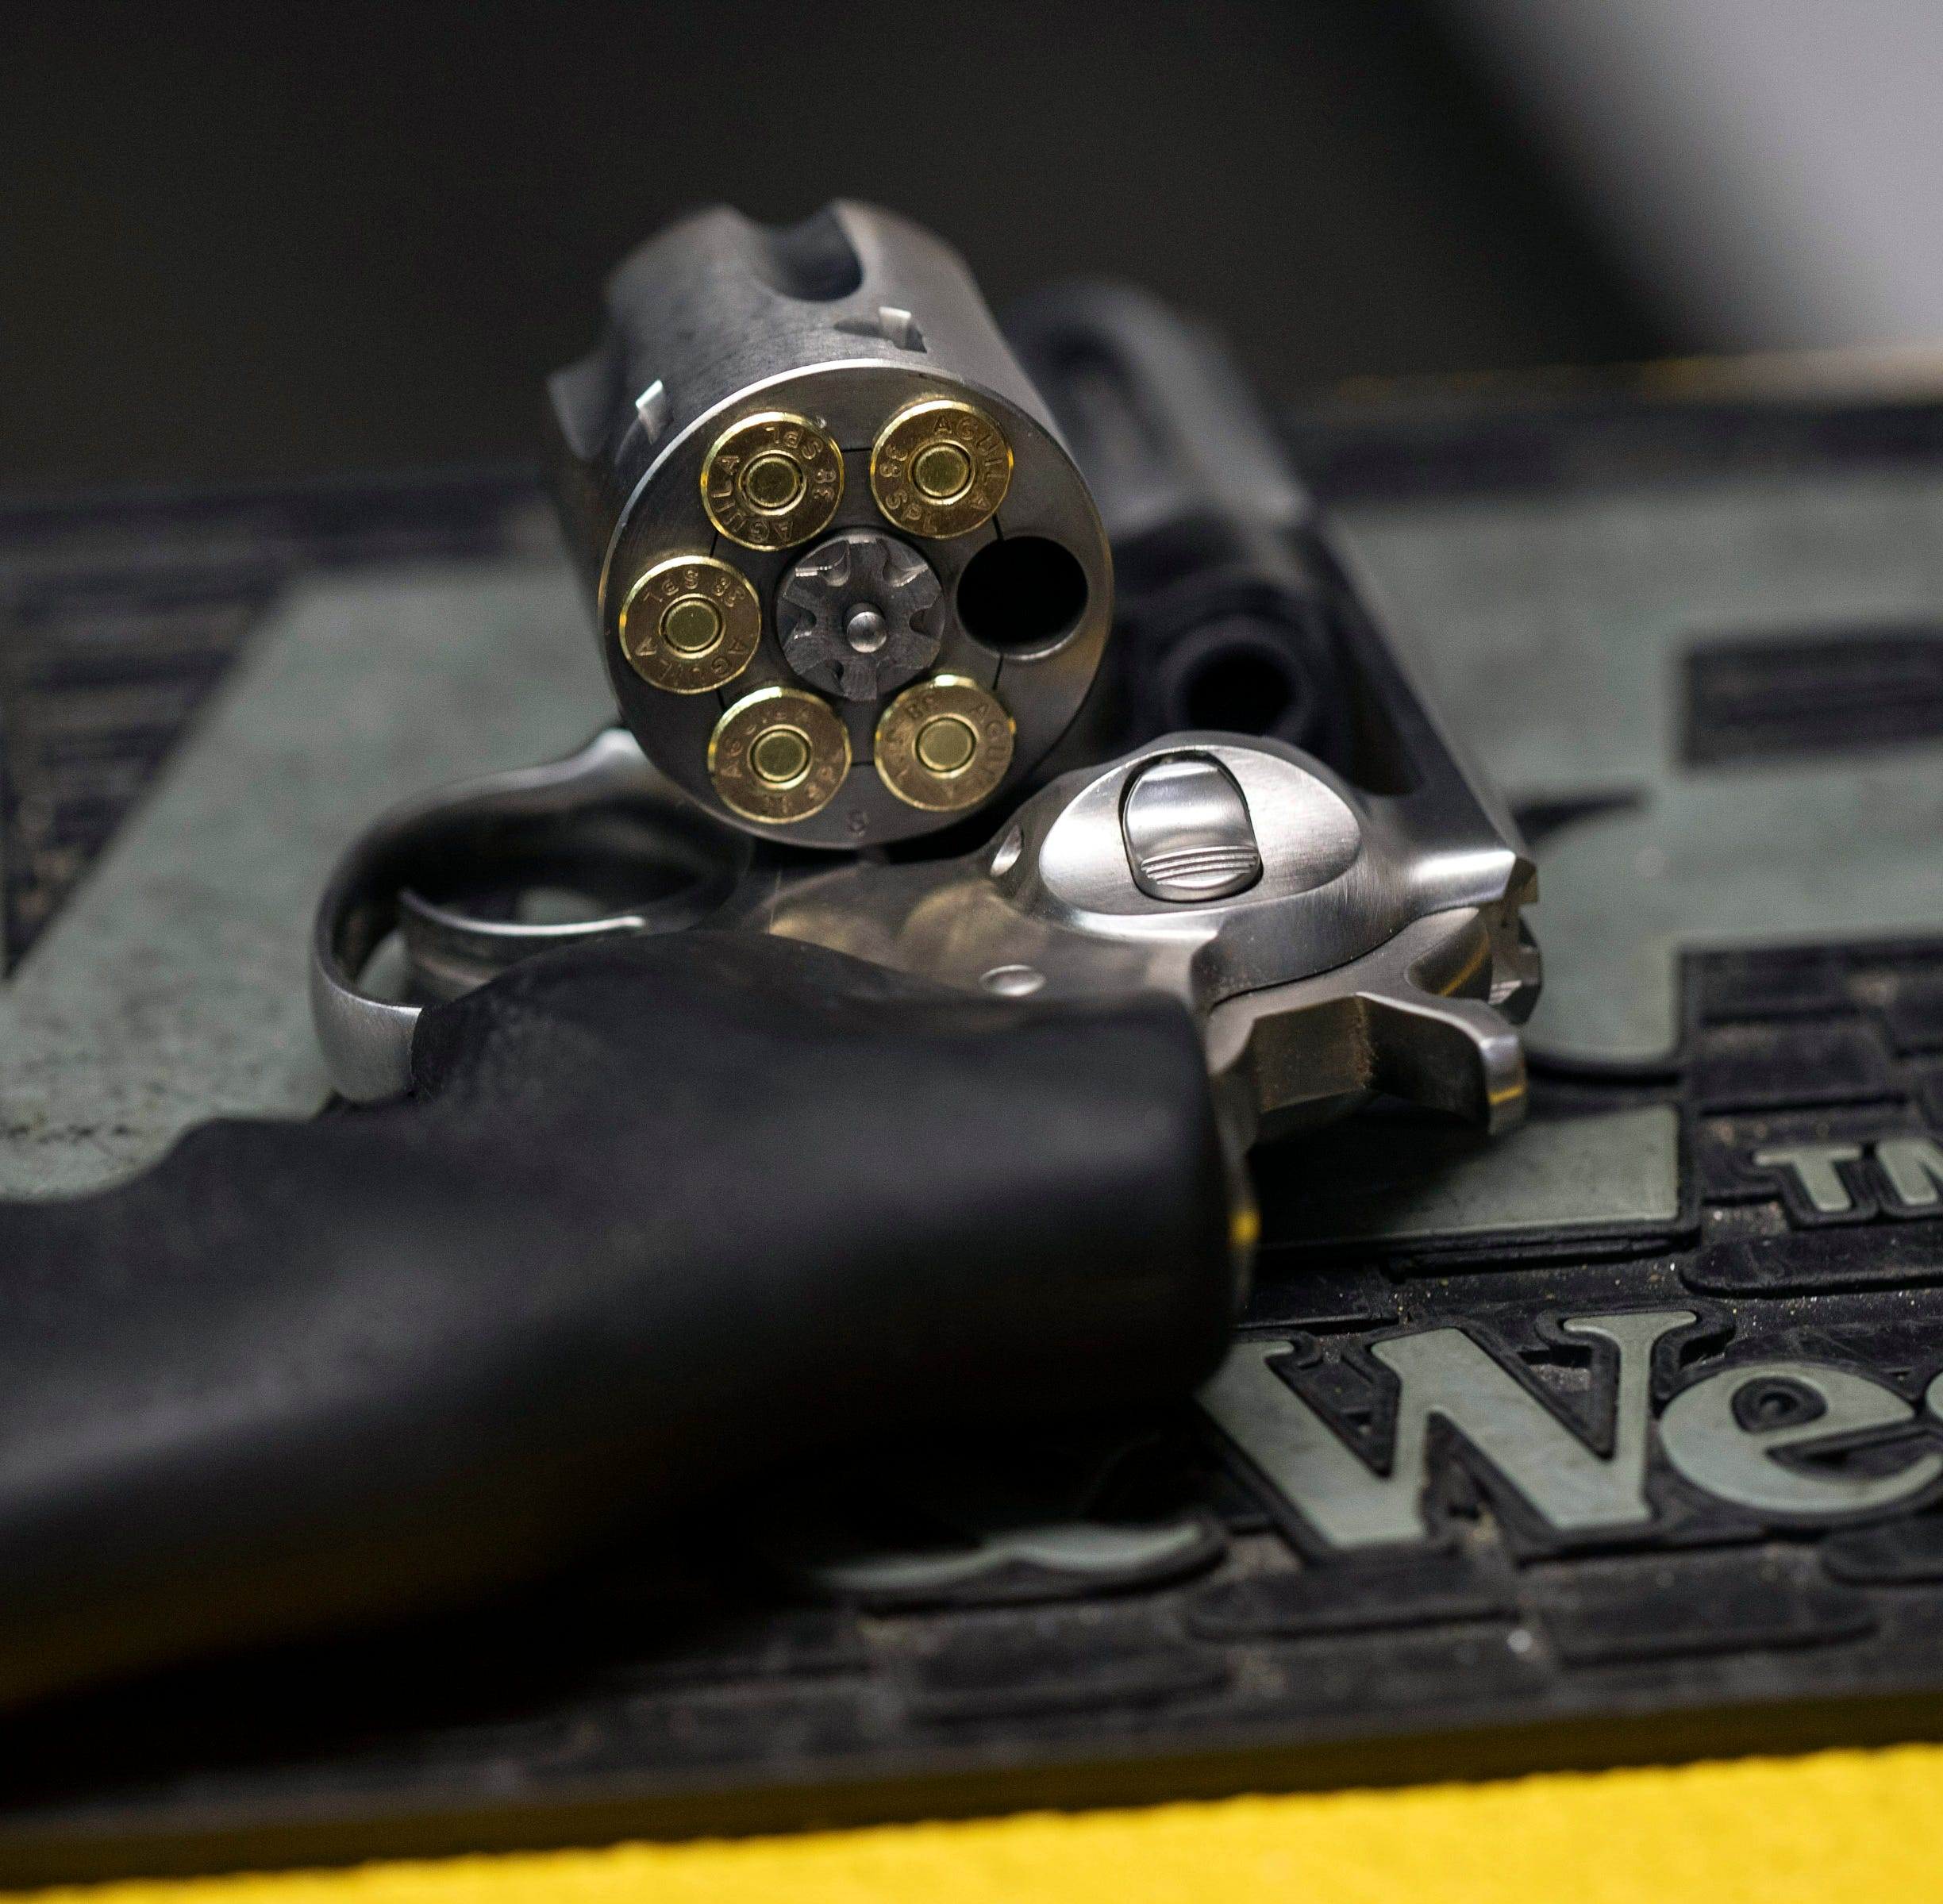 Kentucky's new concealed carry law: Here's what you should know